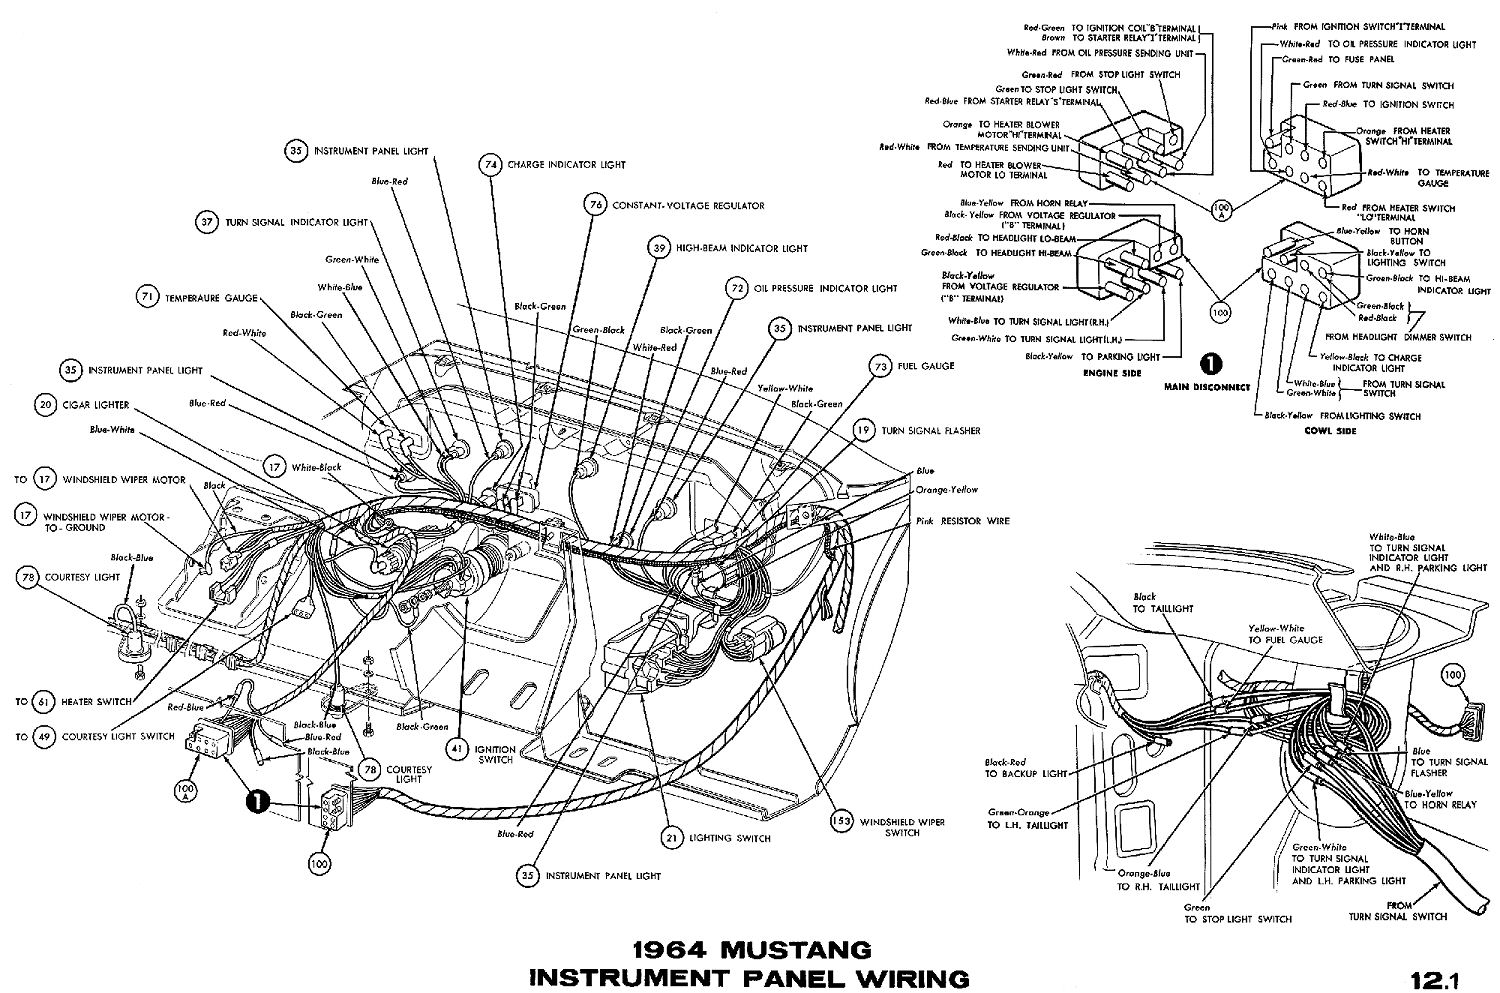 Parts Diagram On 1968 Mustang Instrument Cluster Wiring Headlight Switch El Ritningar Rh Ht67 Com